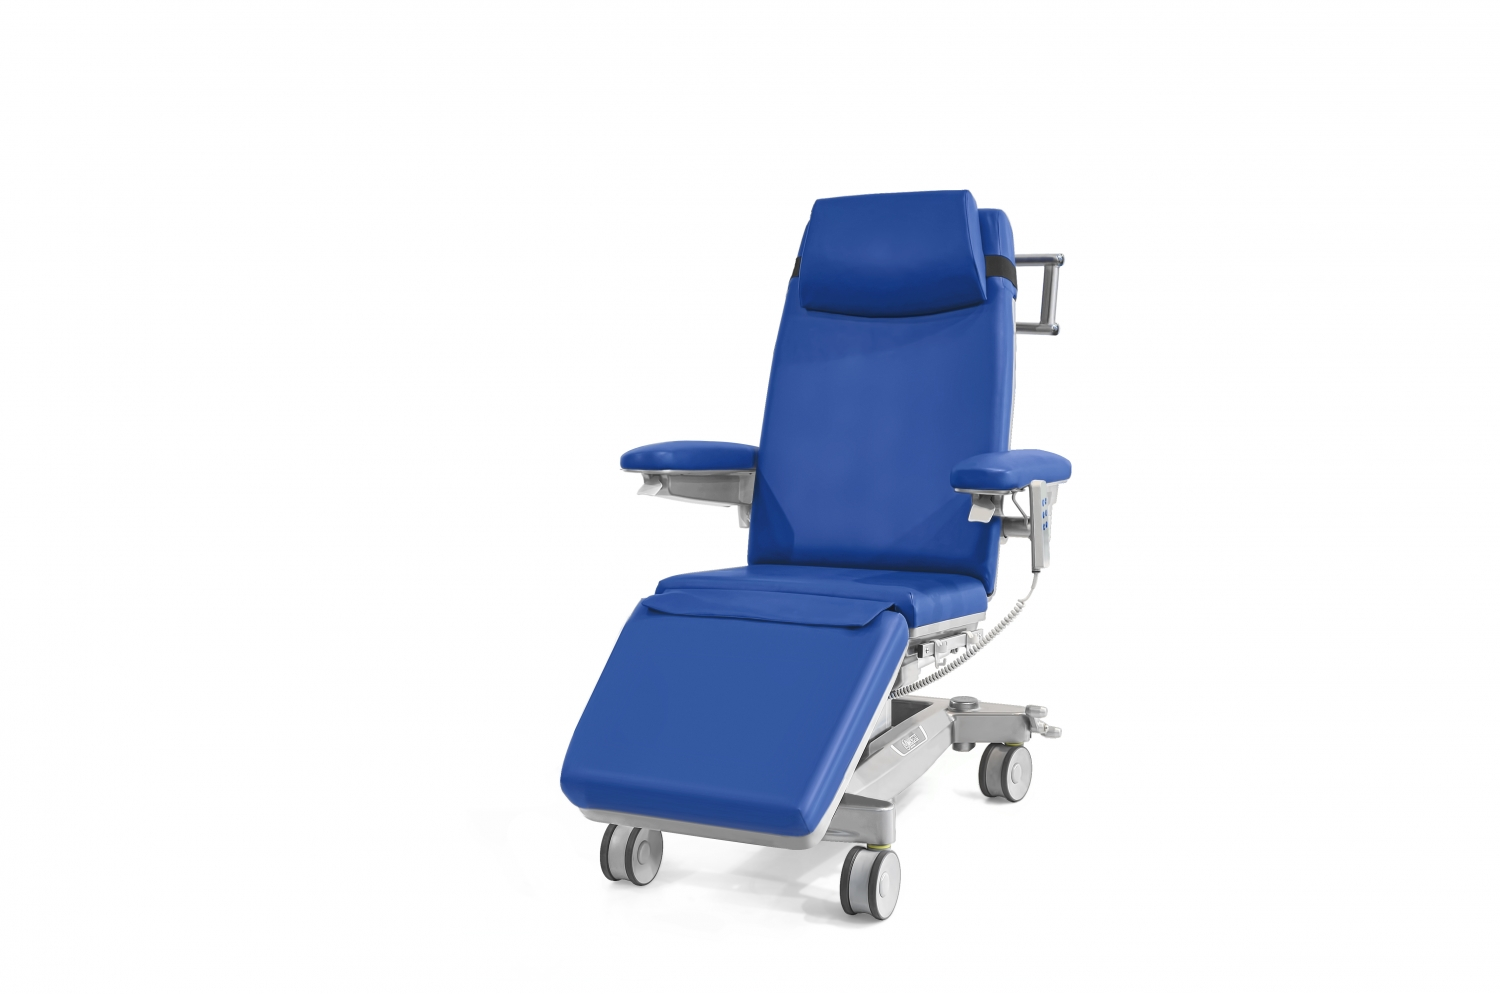 electric recliner chair covers australia beds for sale treatments hospital malvestio